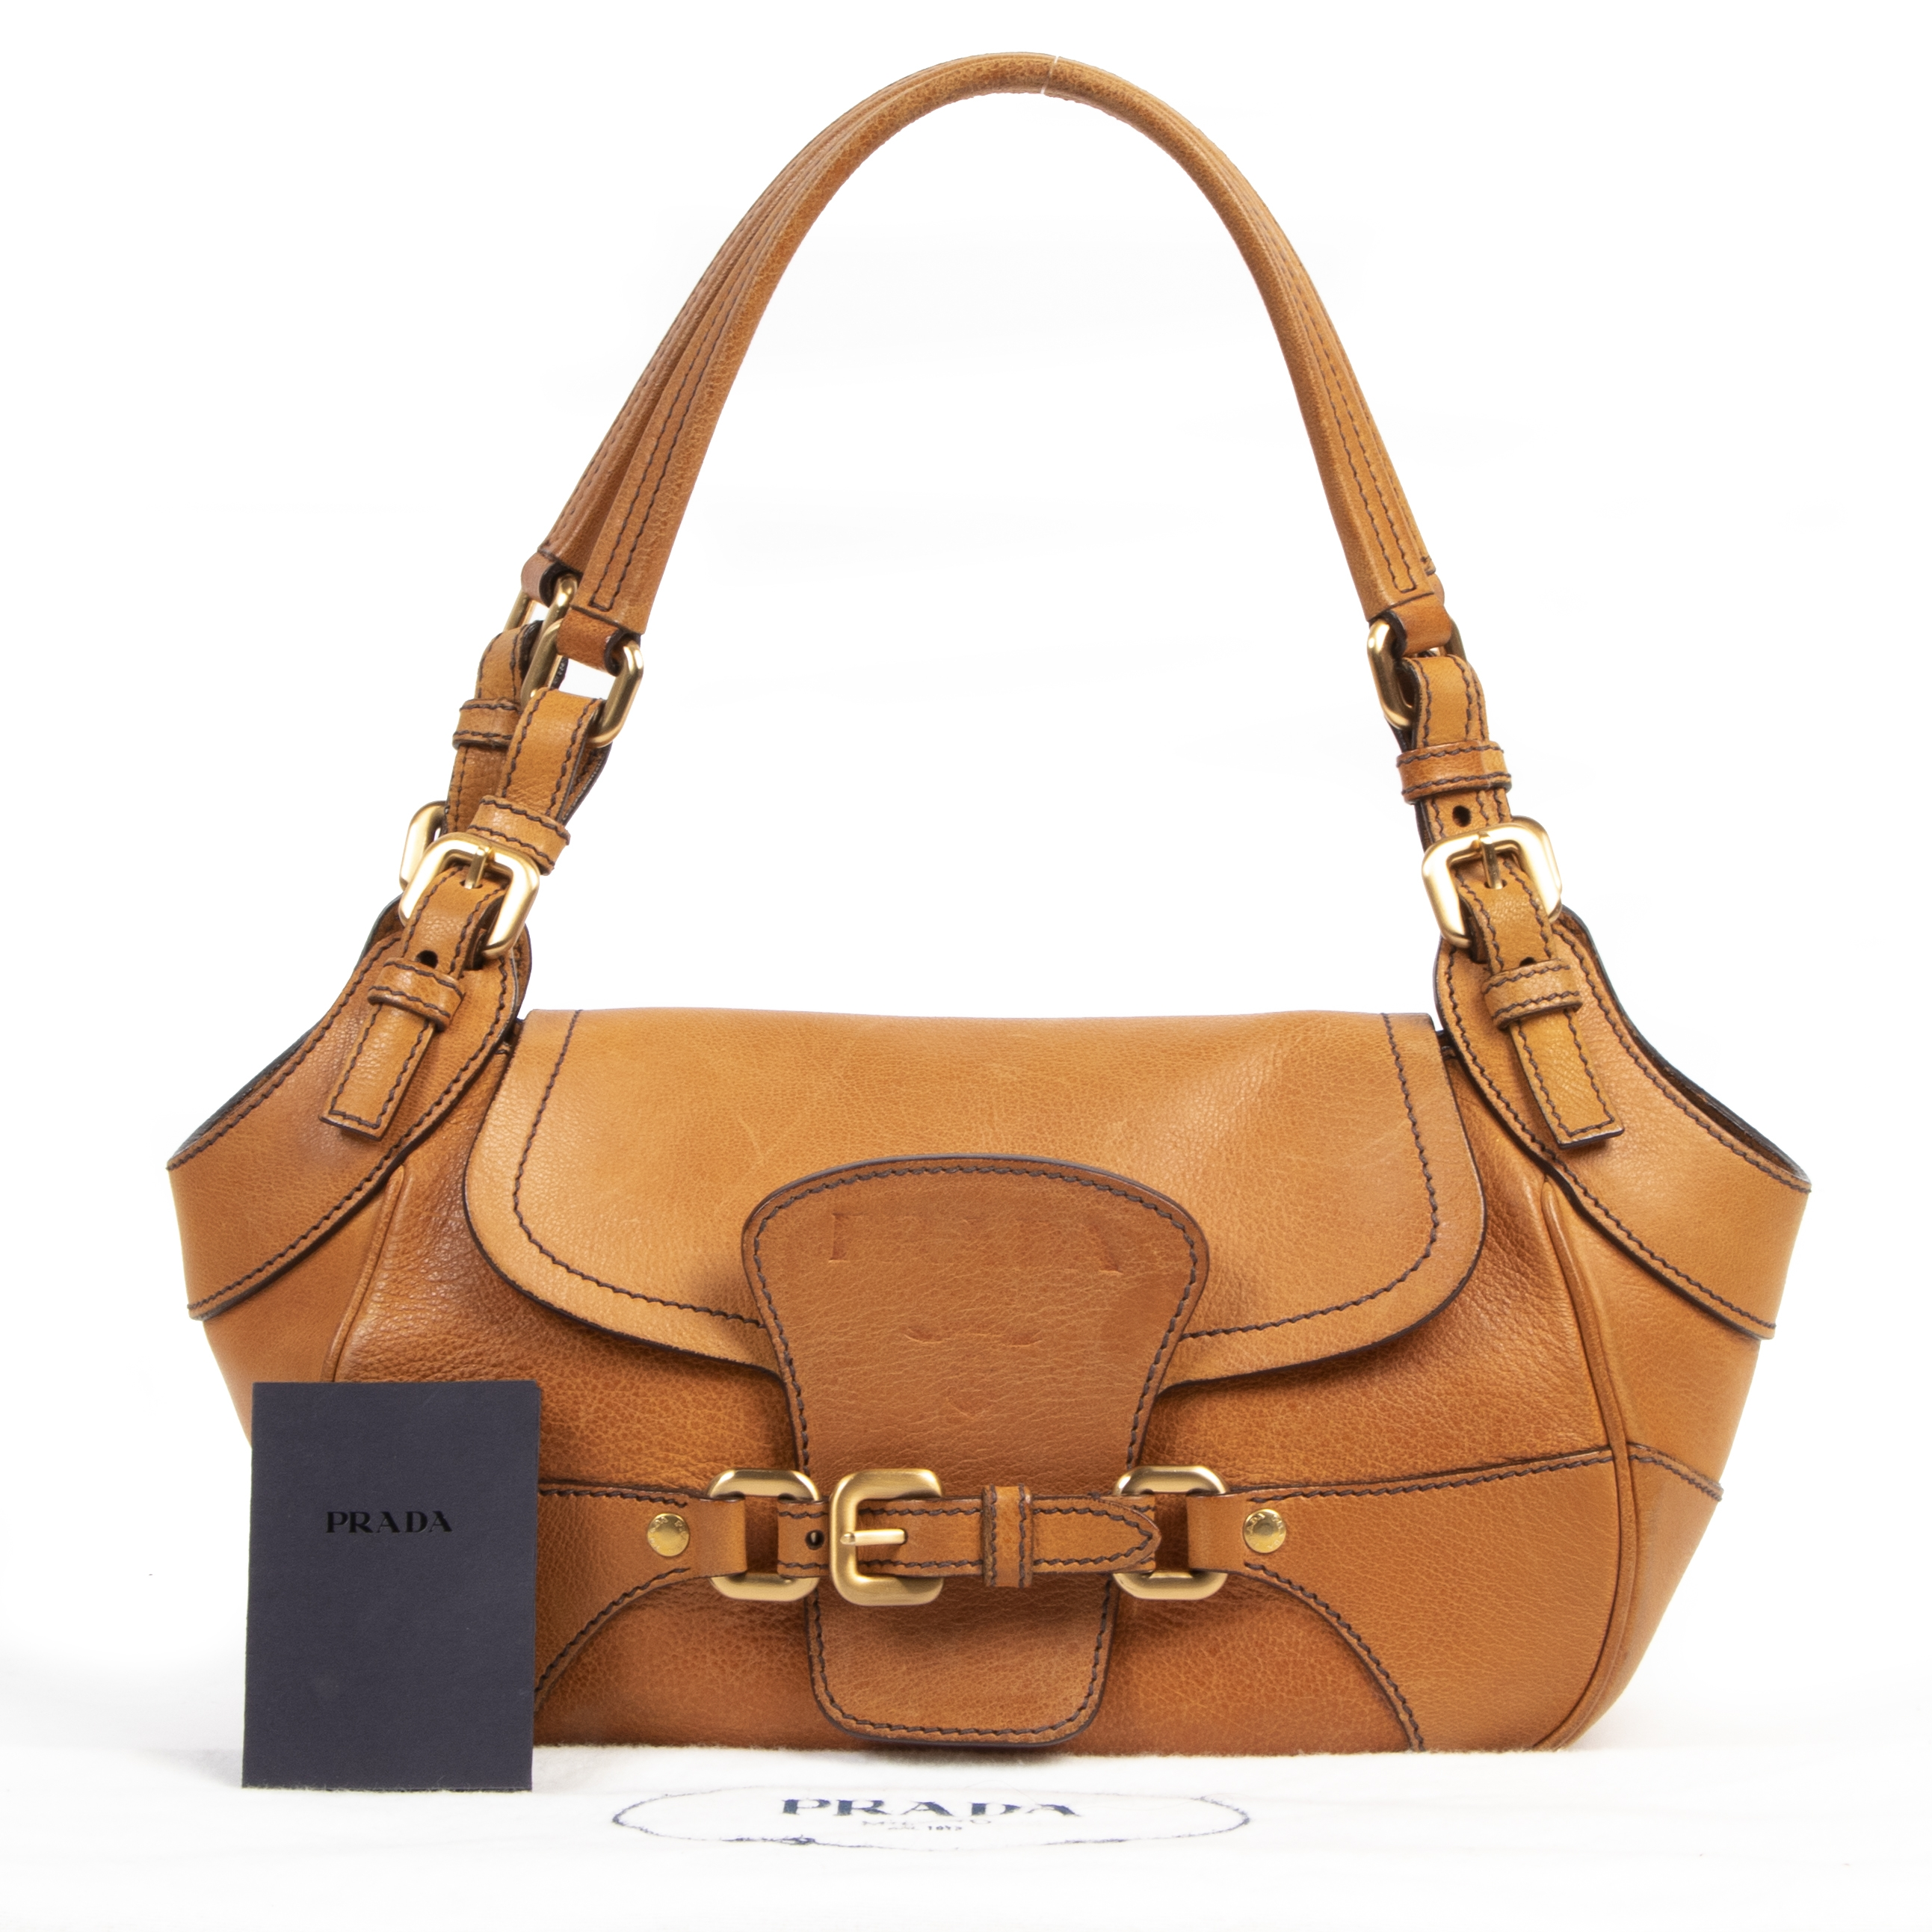 Buy and sell 100% authentic Prada Cognac Leather Shoulder Bag for the best price